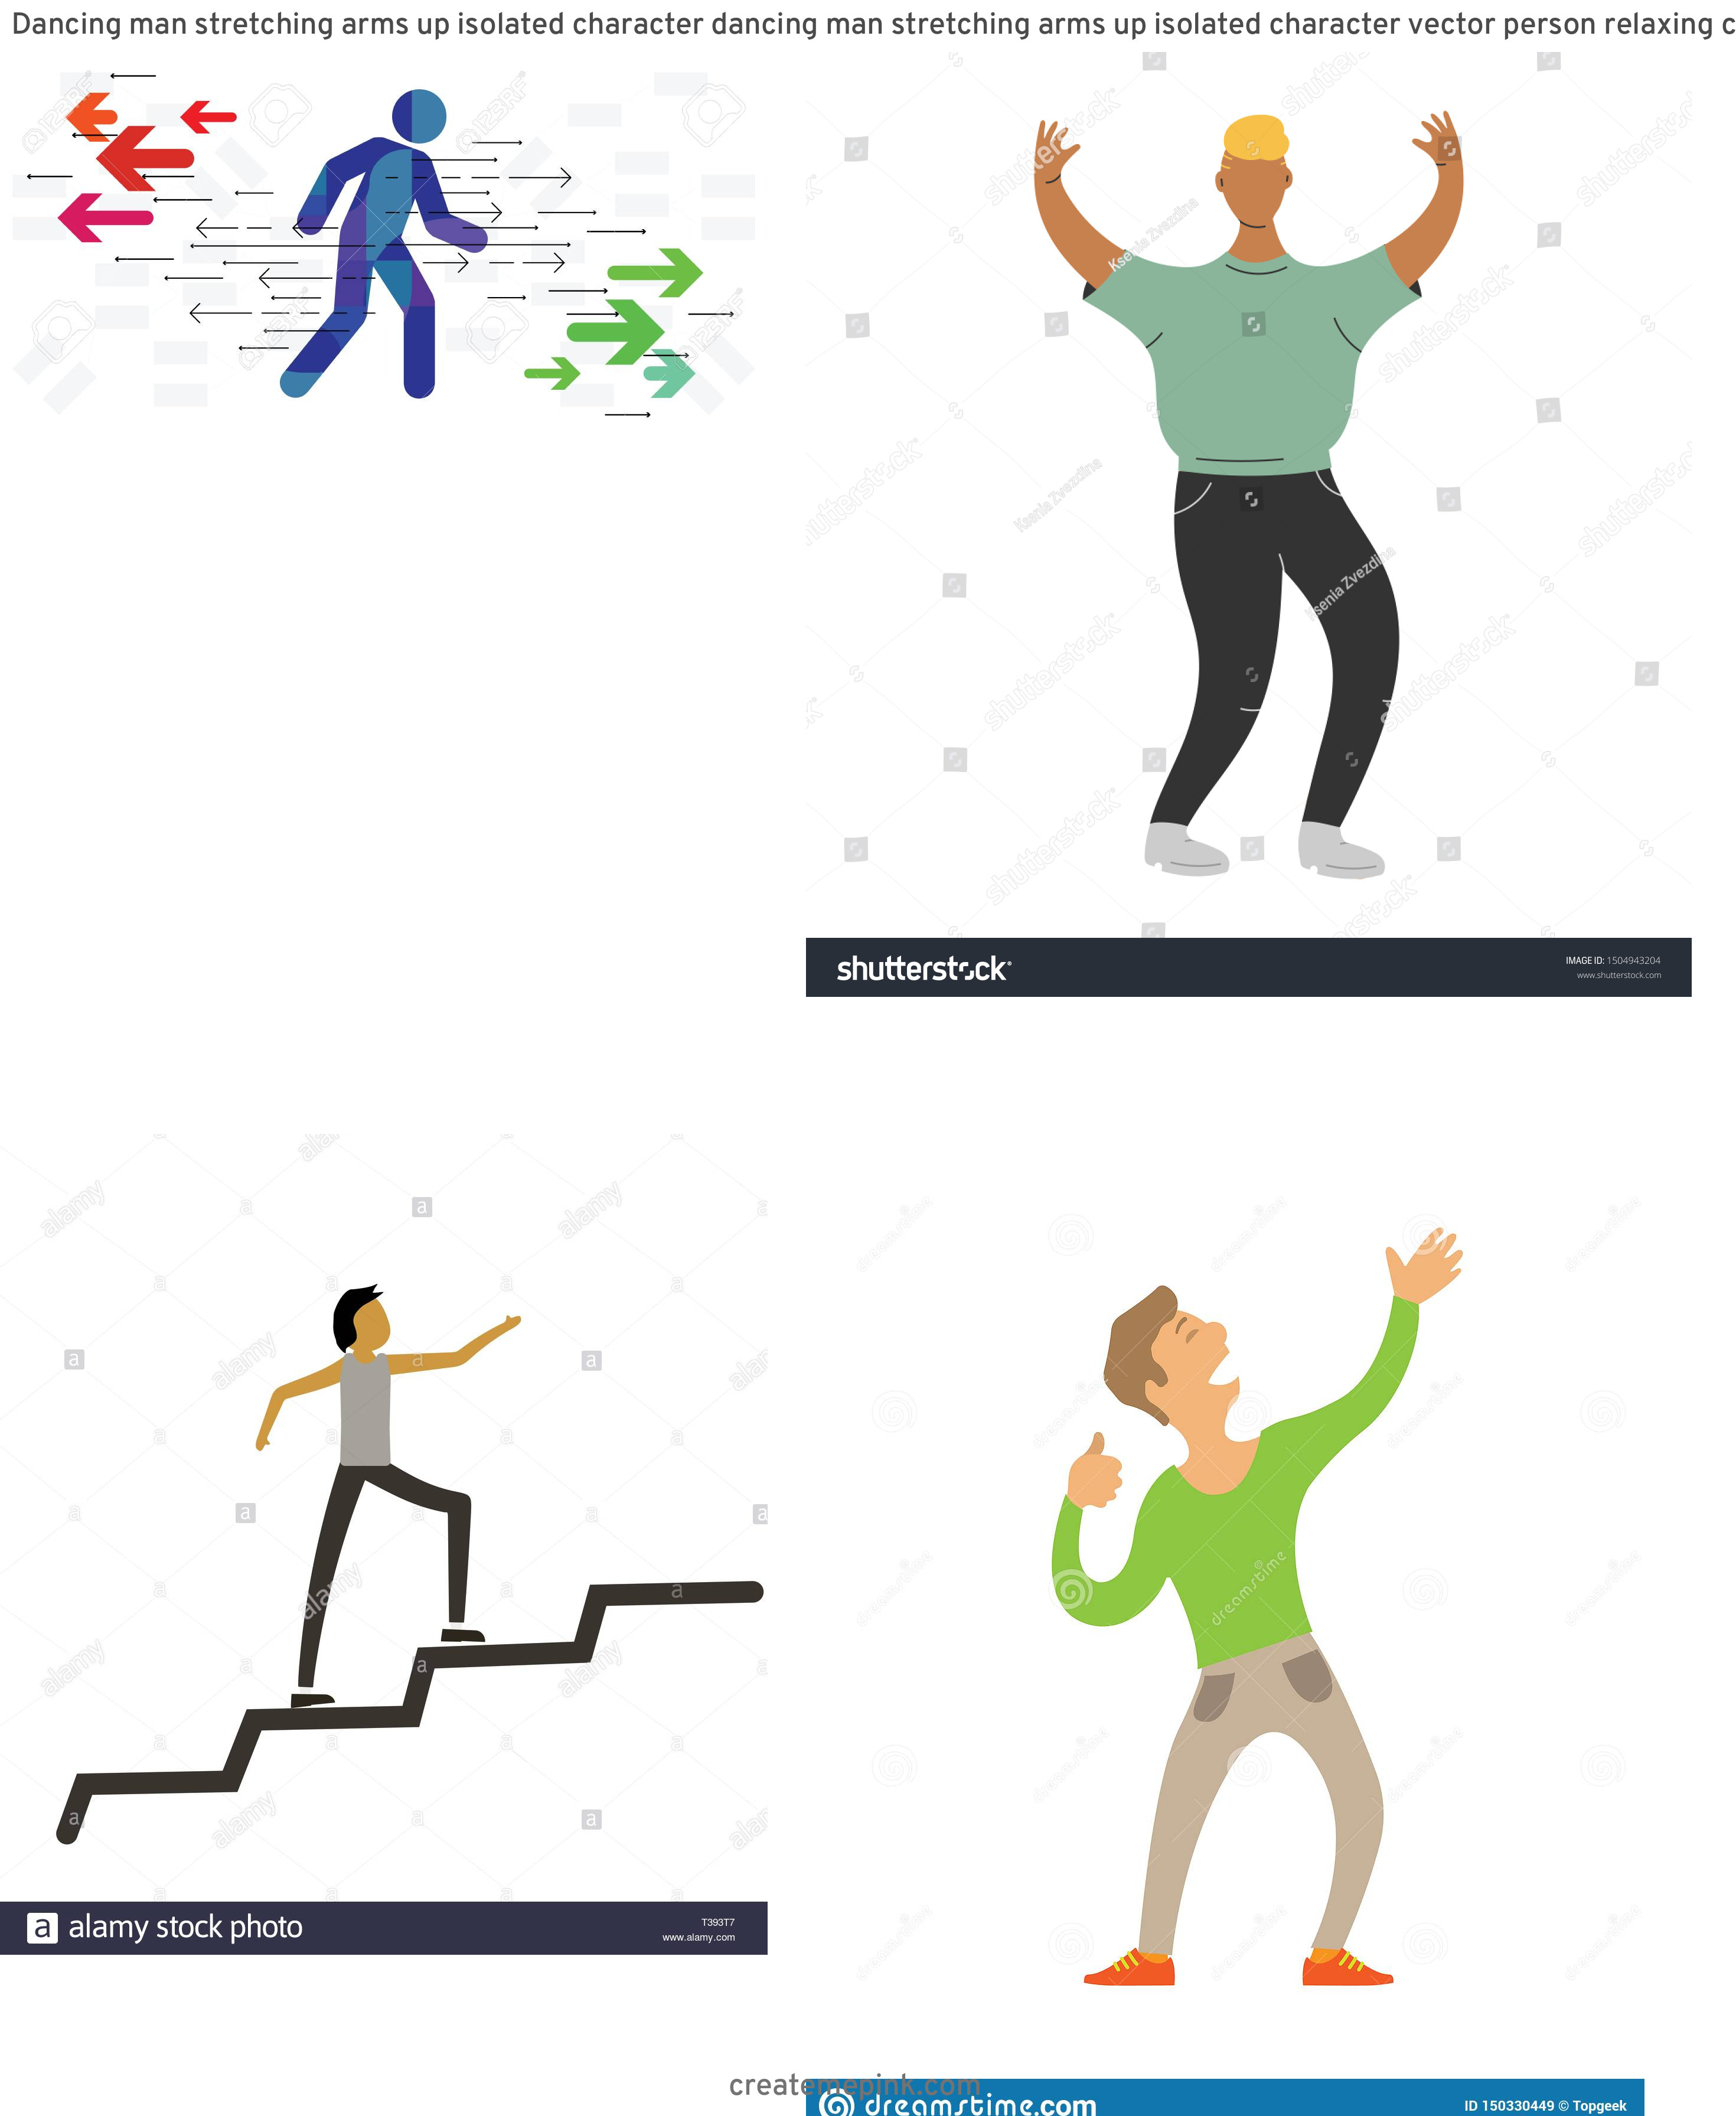 Vector Person Moving: Dancing Man Stretching Arms Up Isolated Character Dancing Man Stretching Arms Up Isolated Character Vector Person Relaxing Club Image